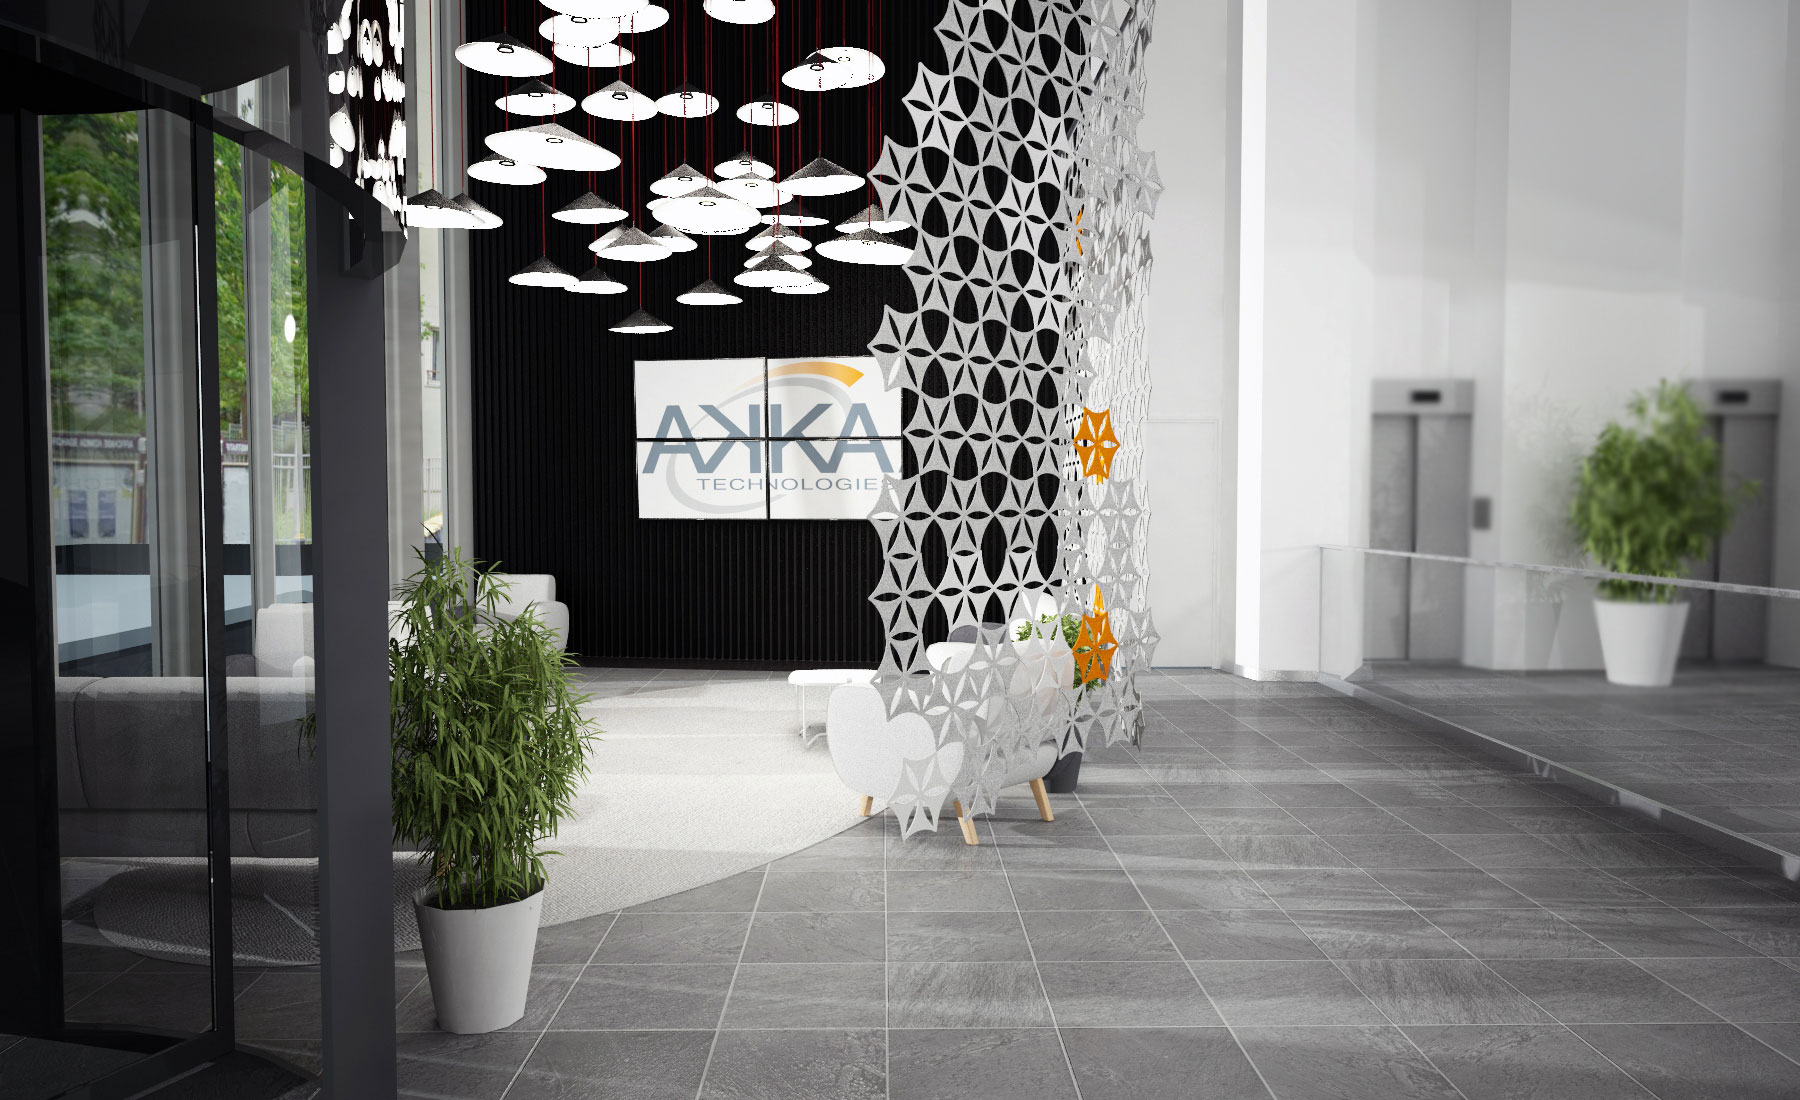 OPEN SPACE – LOBBY & CAFET / Akka Toulouse